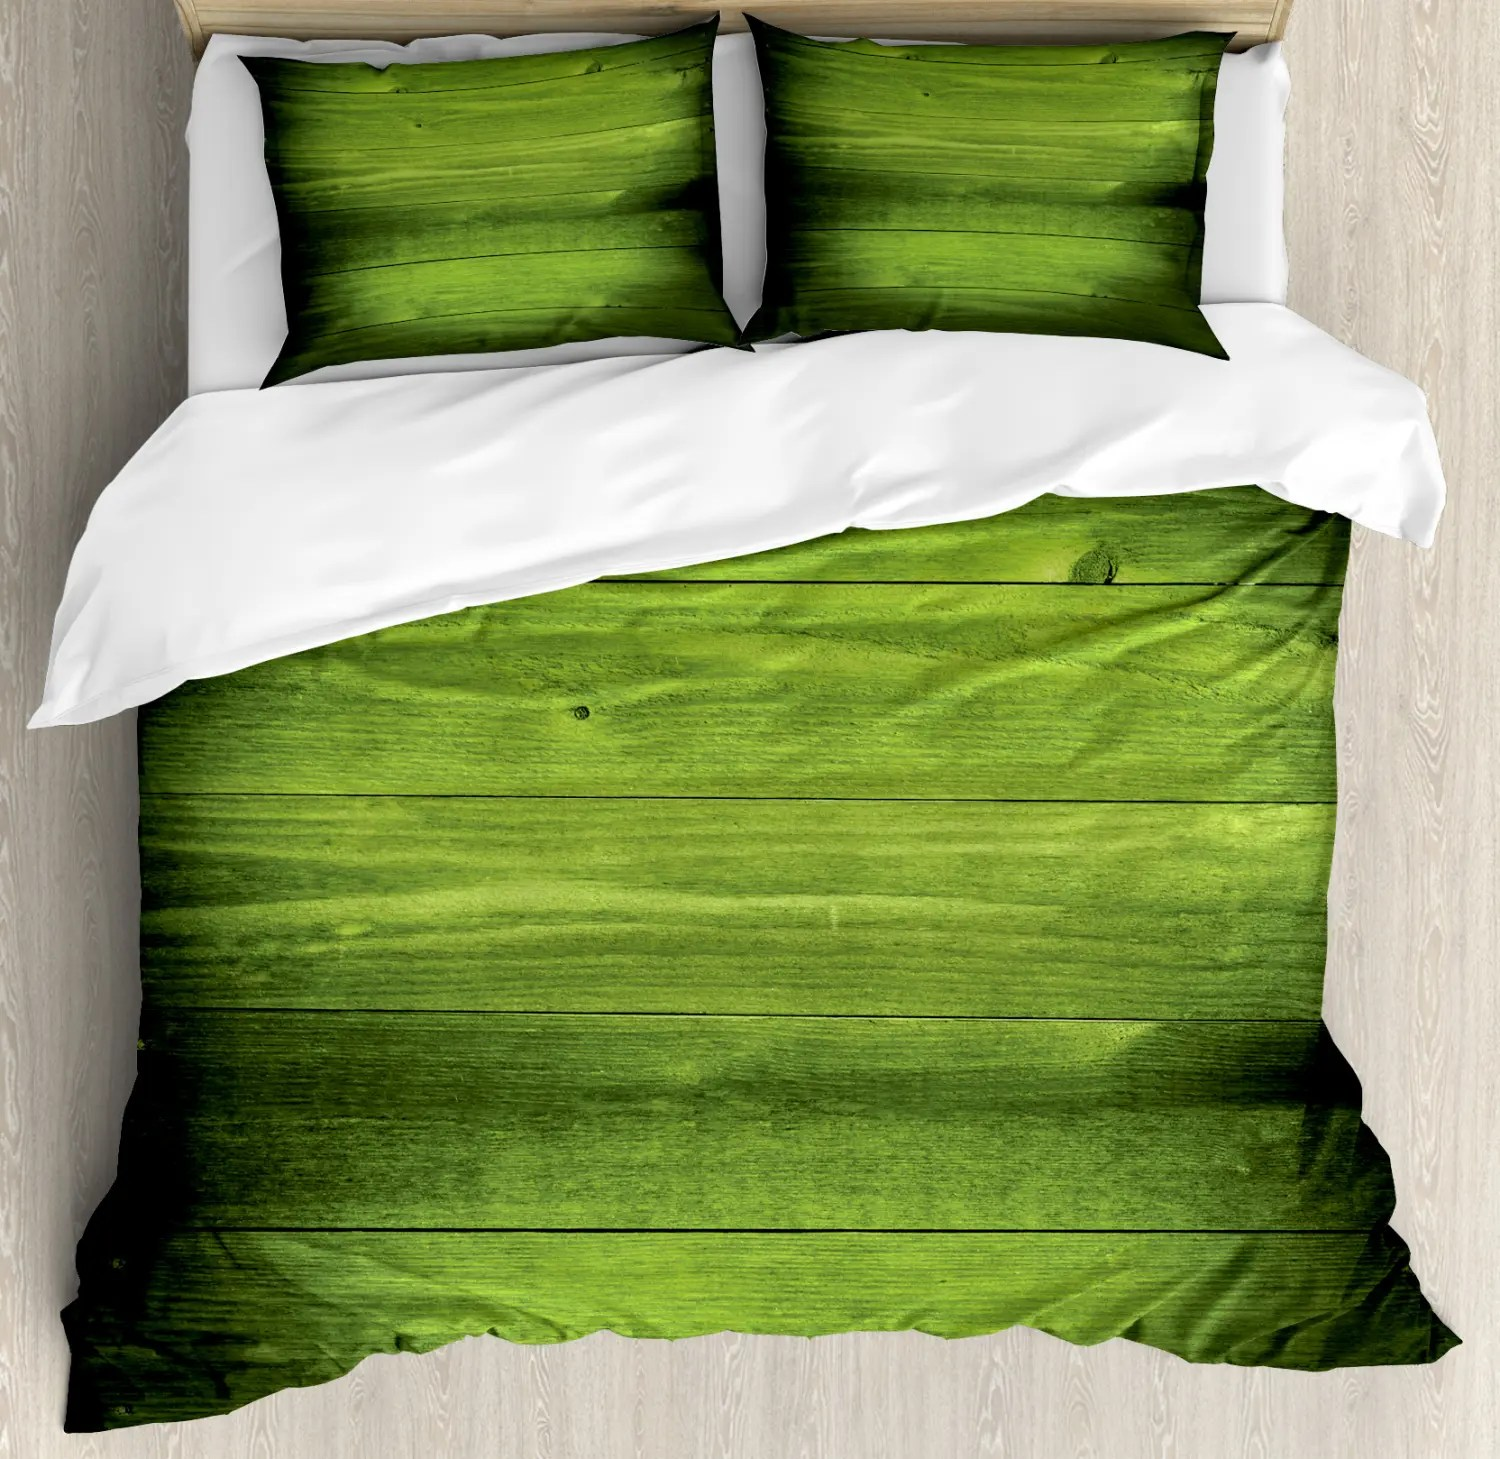 Green Ambesonne Duvet Cover Set Twin Queen King Sizes with